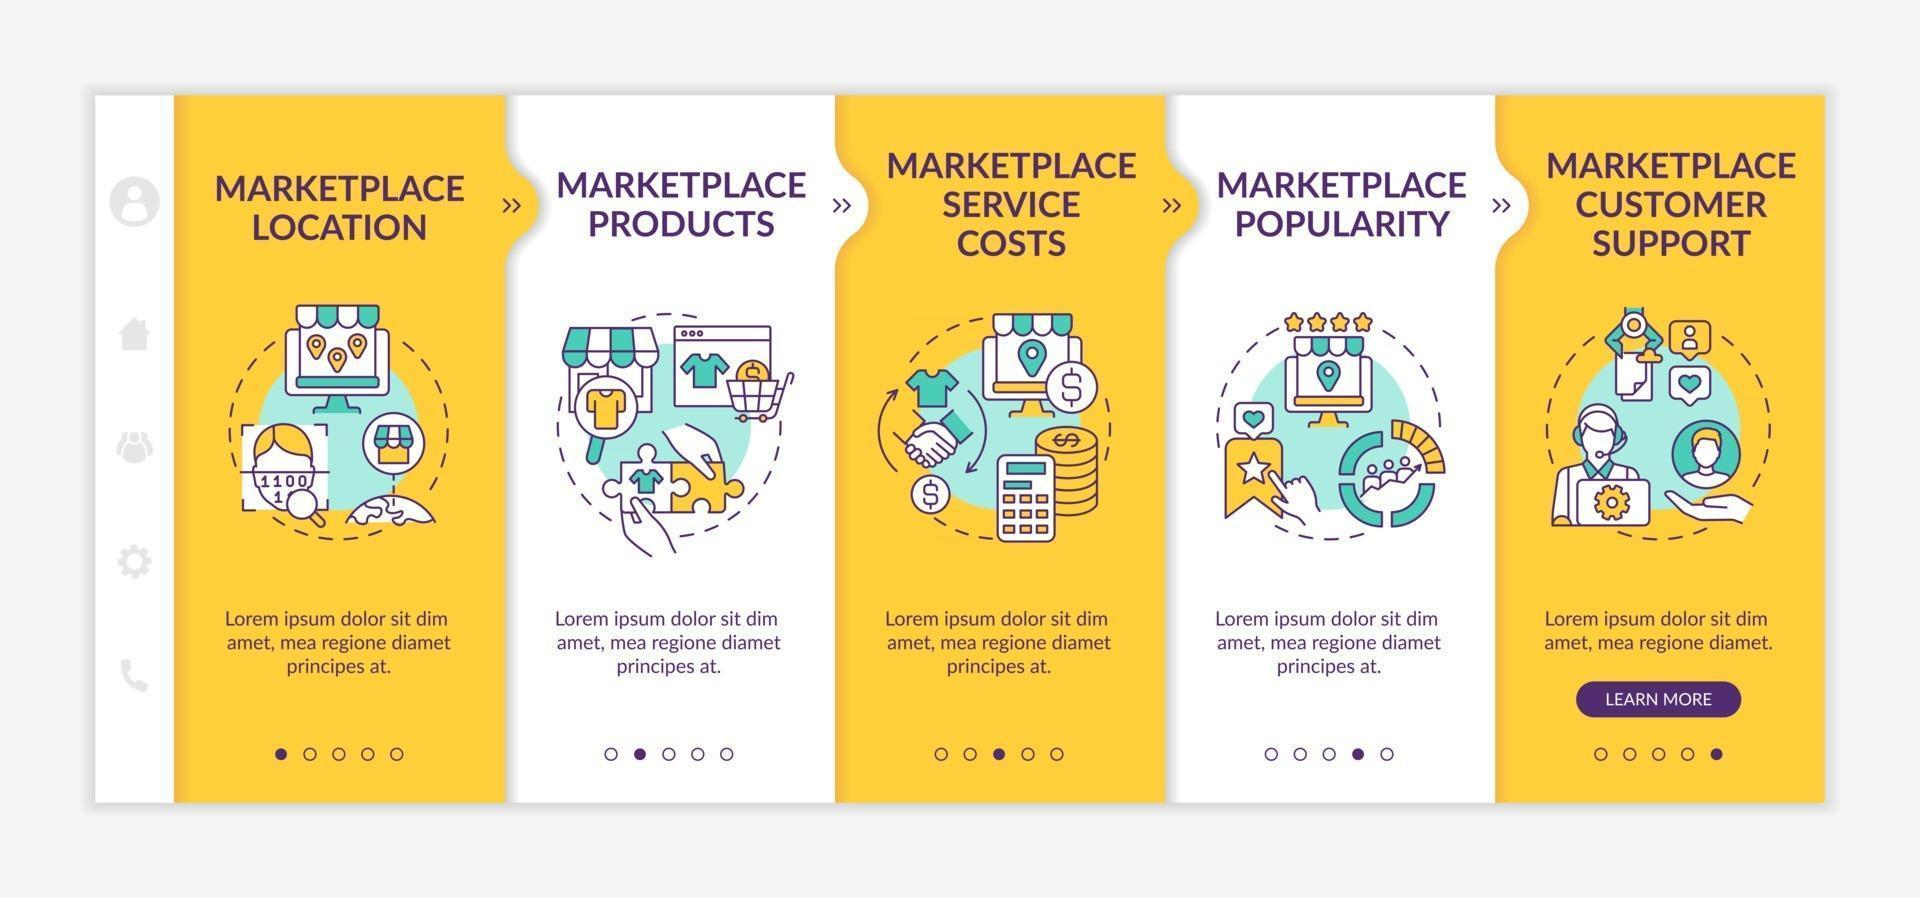 Market place choice parameters onboarding vector template. Responsive mobile website with icons. Web page walkthrough 5 step screens. Service costs, products color concept with linear illustrations